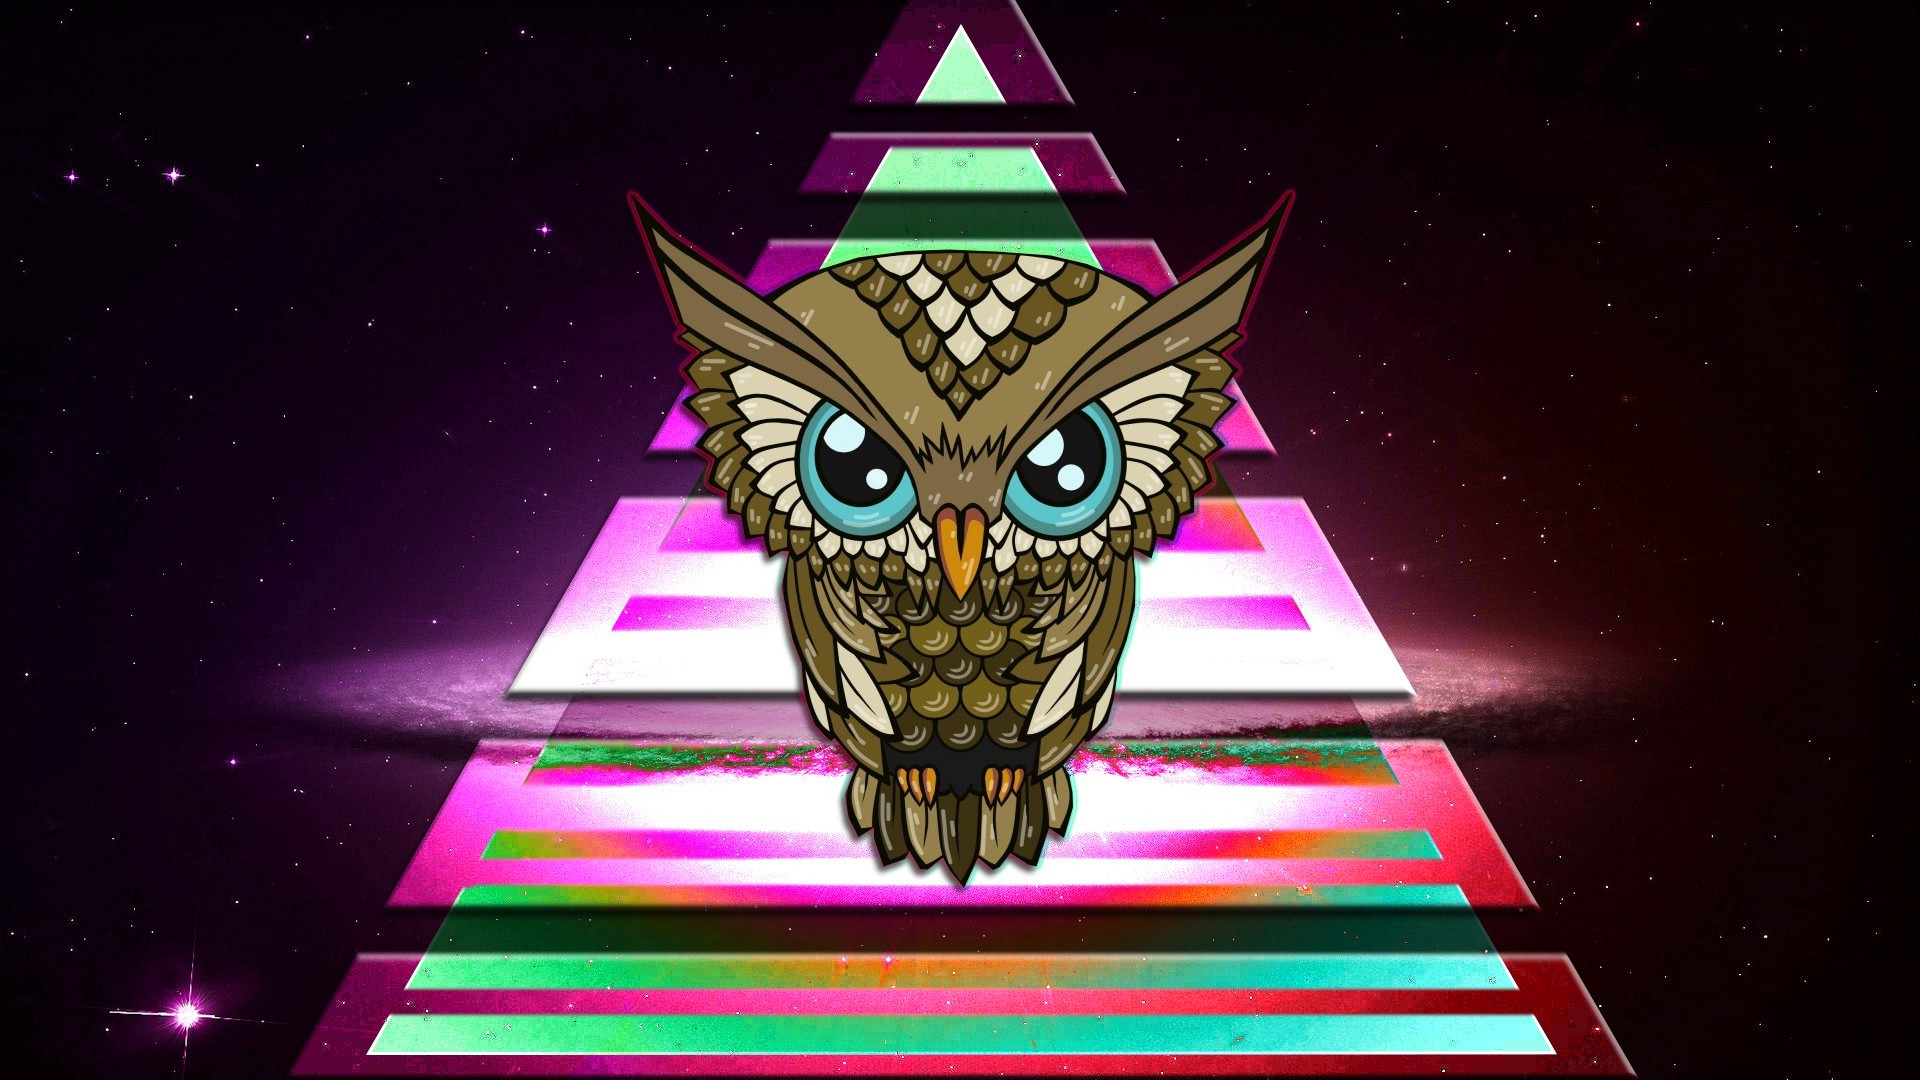 Cool Gravity Falls Wallpapers Owl Triangle Colorful Space Illuminati Wallpapers Hd